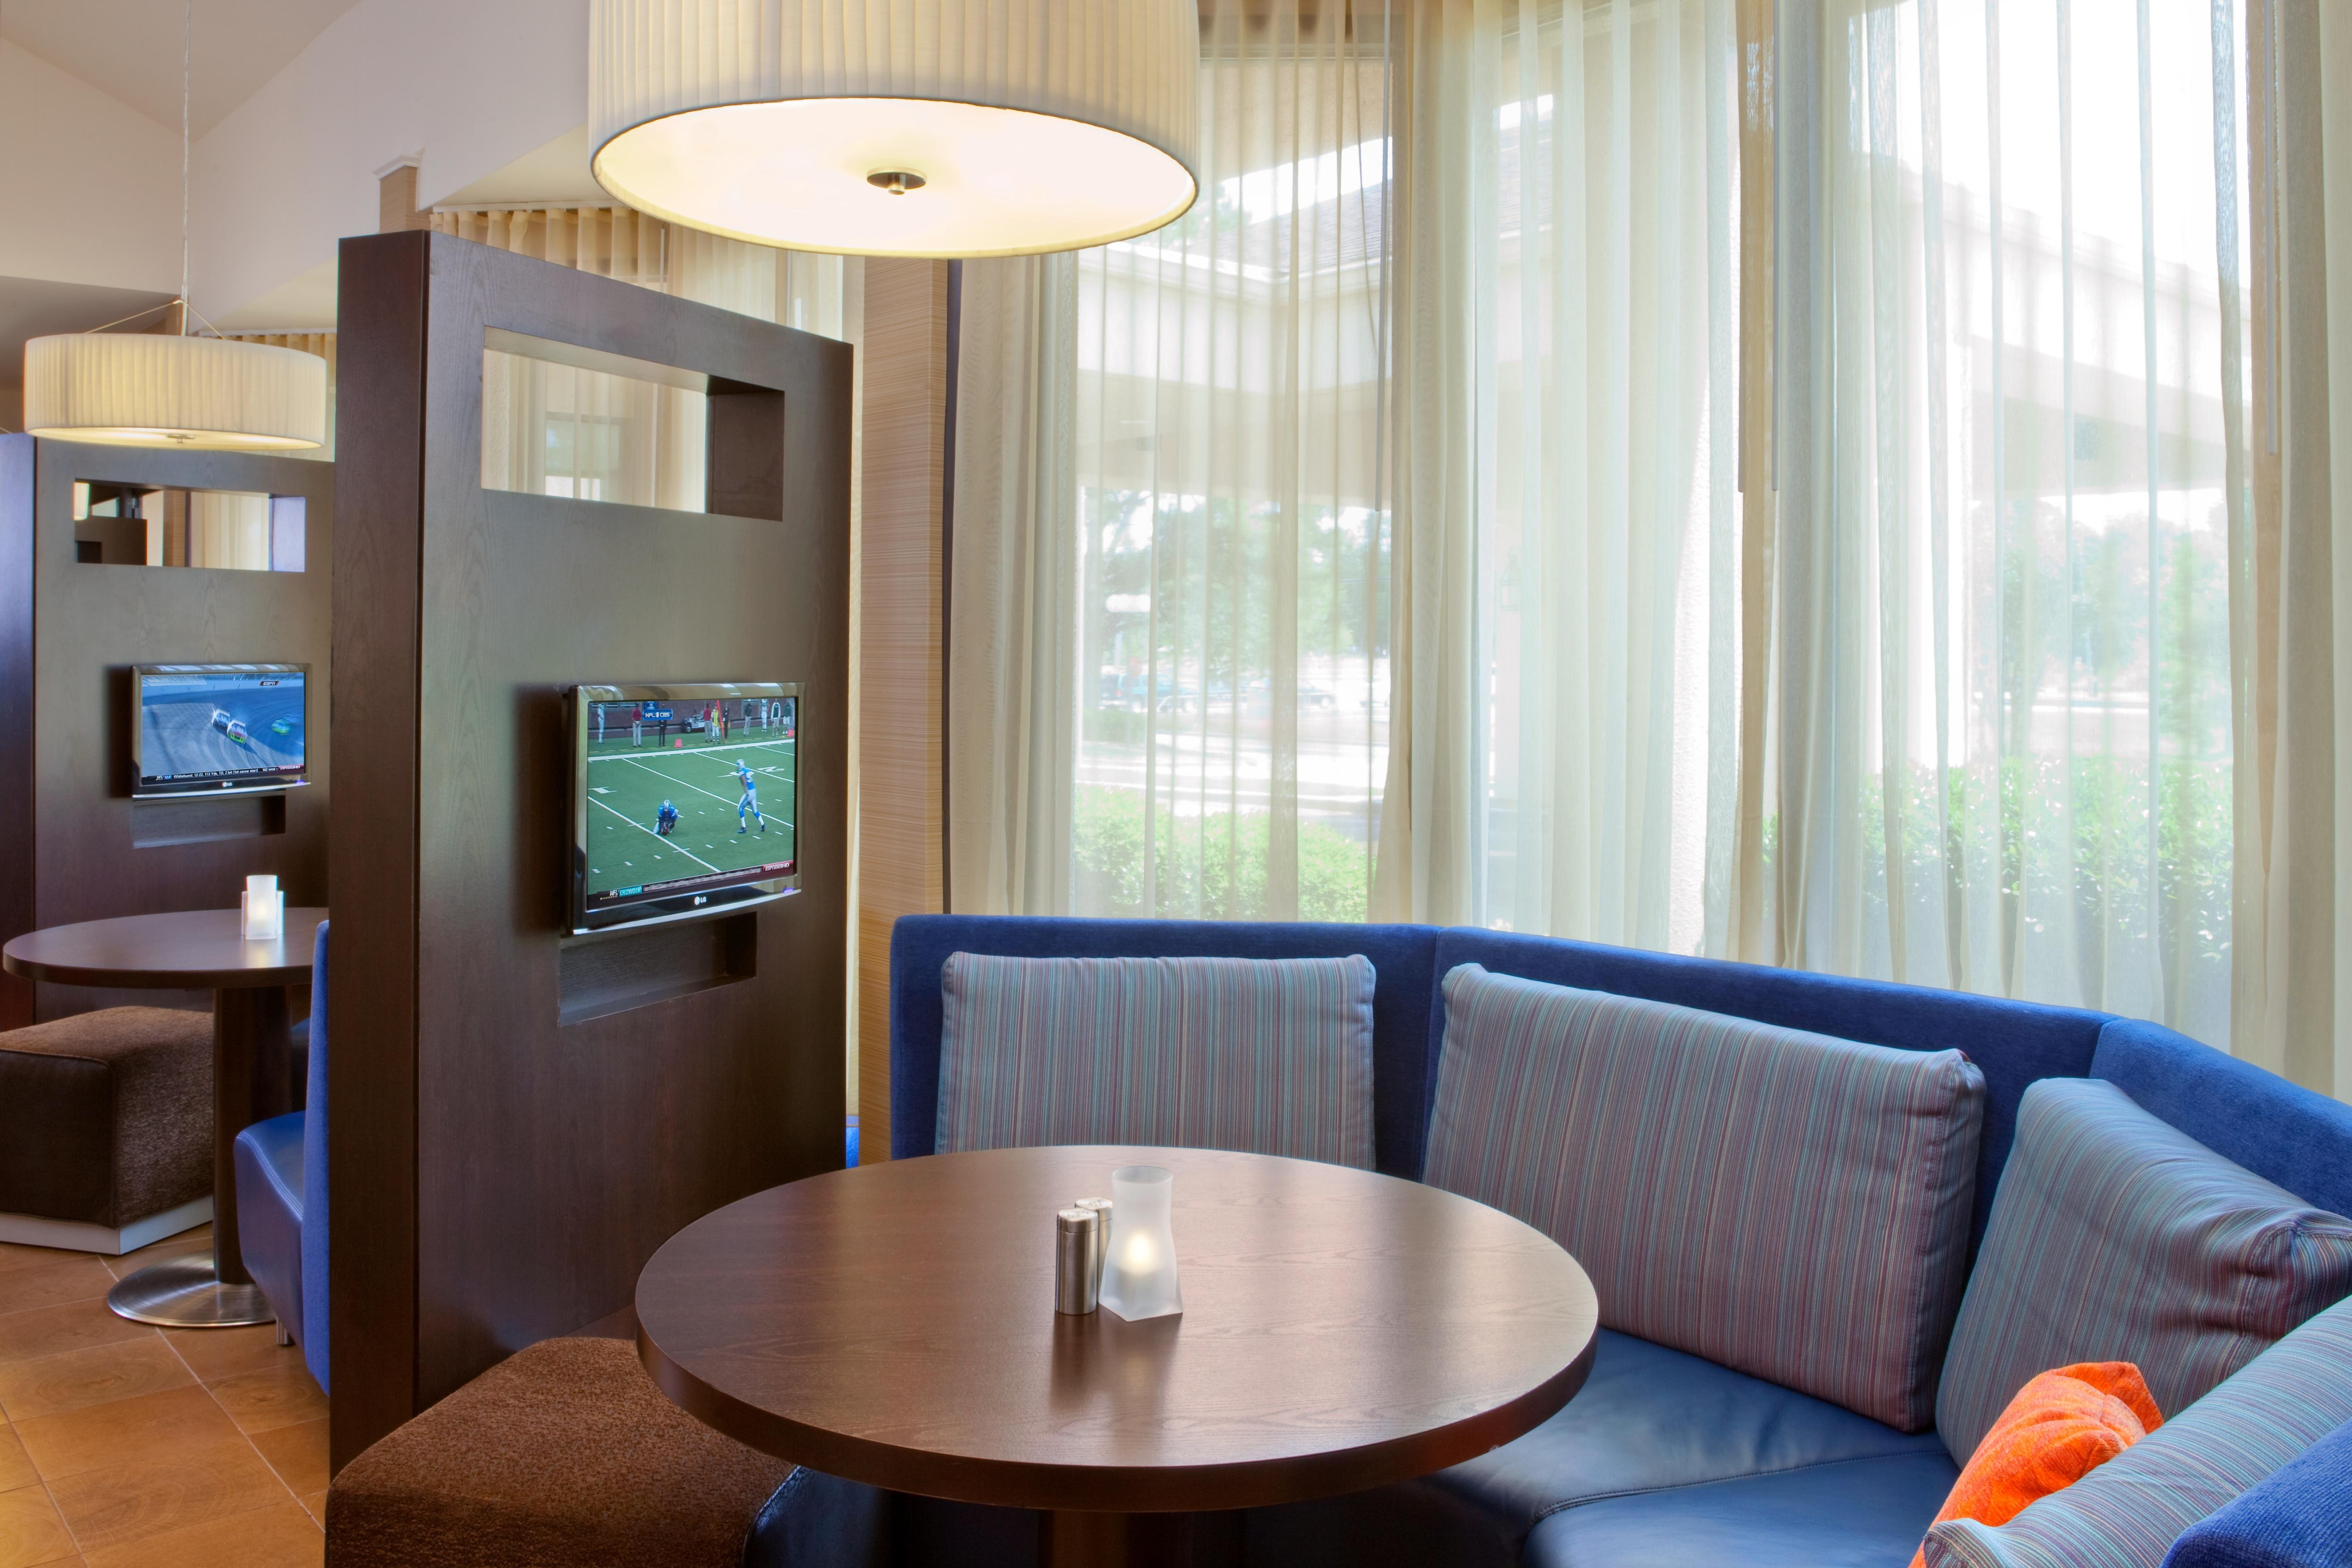 Courtyard by Marriott Columbus image 6